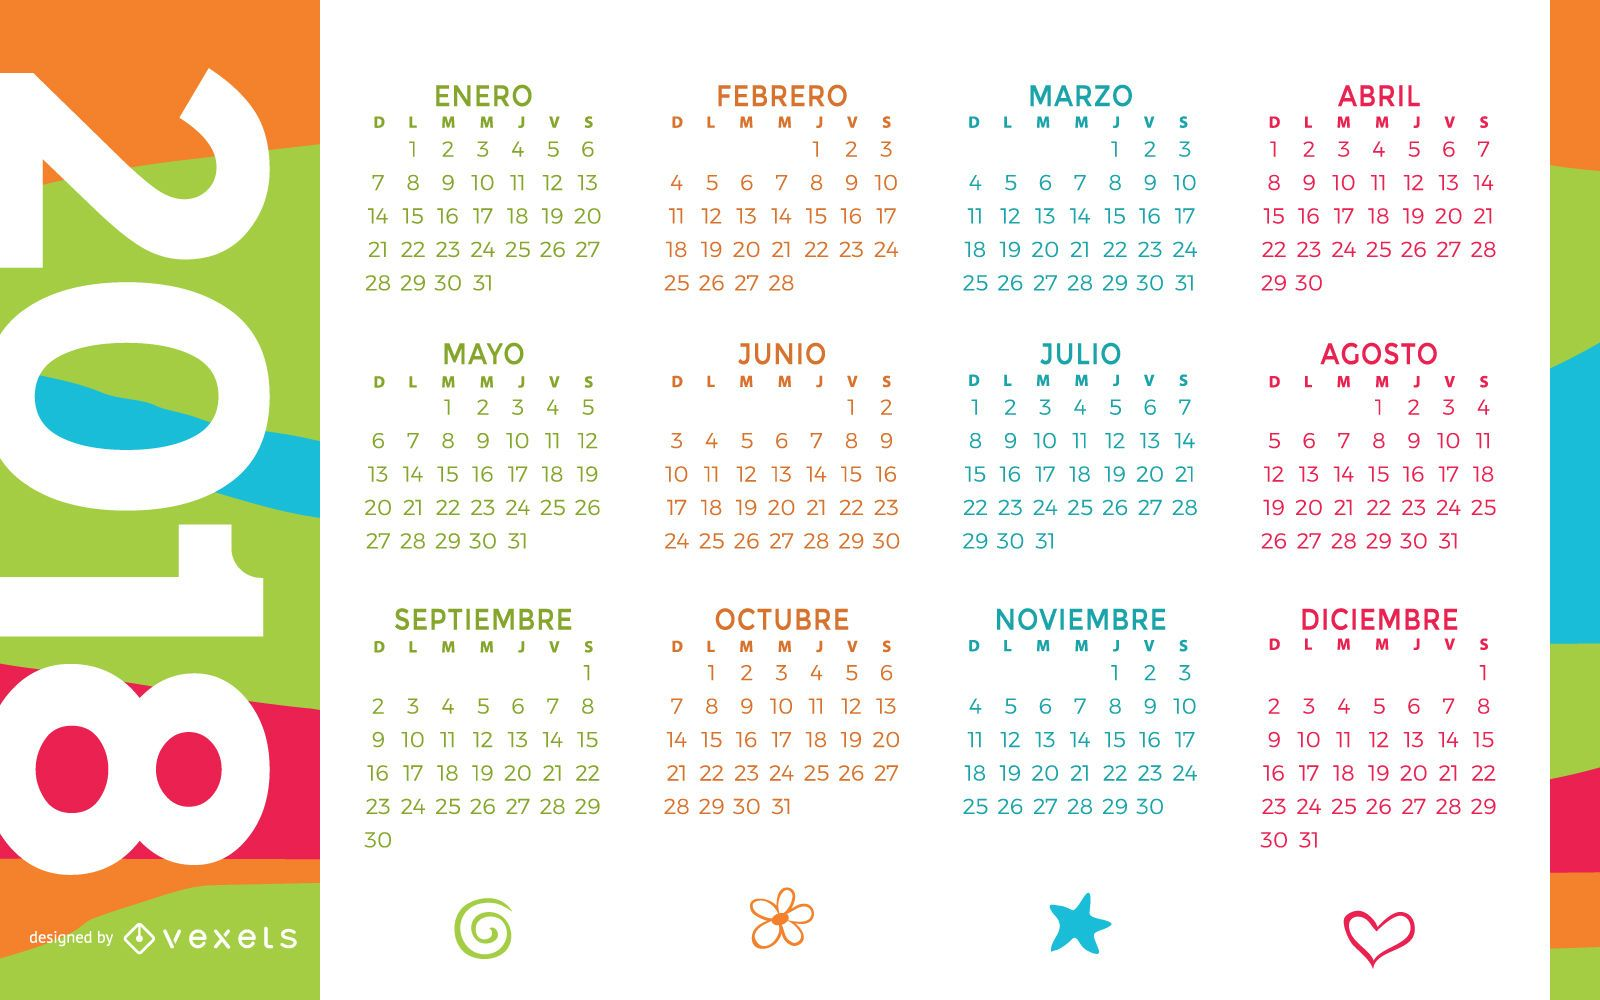 colorful 2018 calendar in spanish download large image 1600x1000px license image user